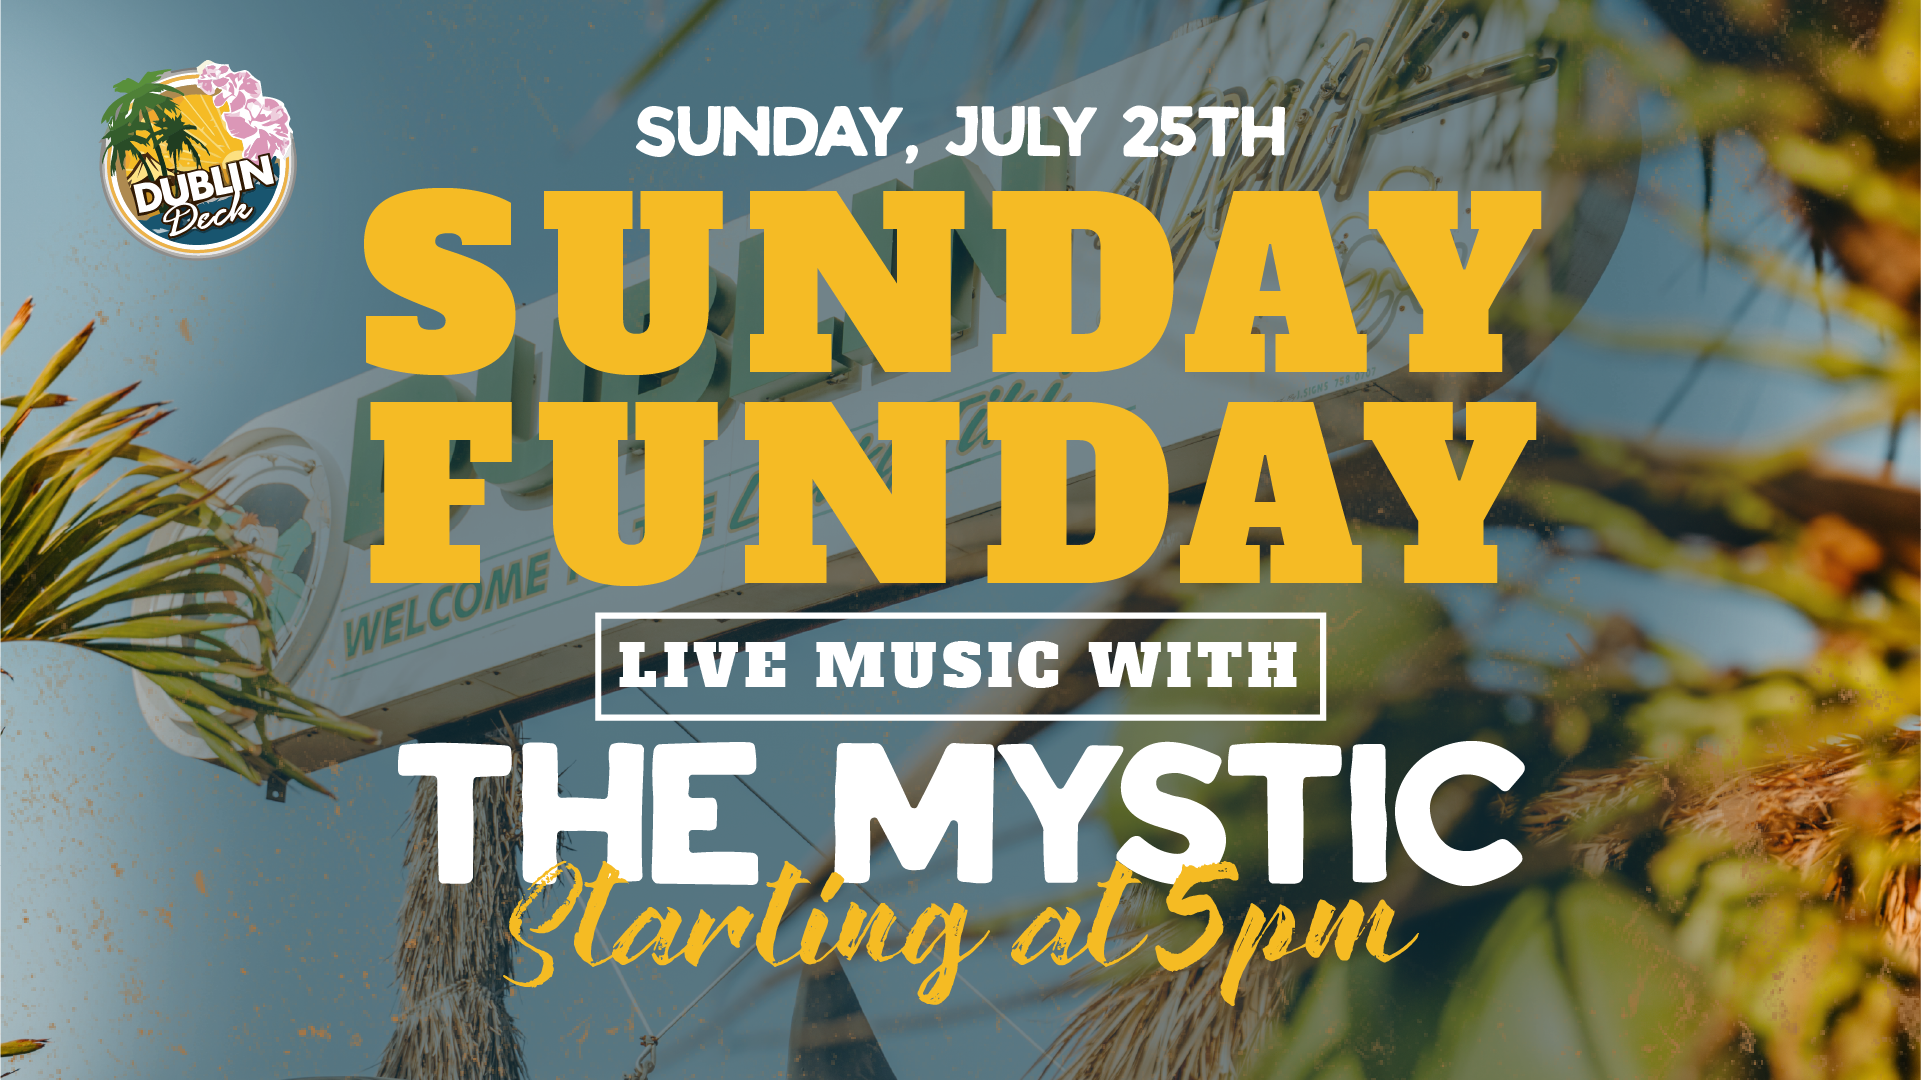 The Mystic on July 25th